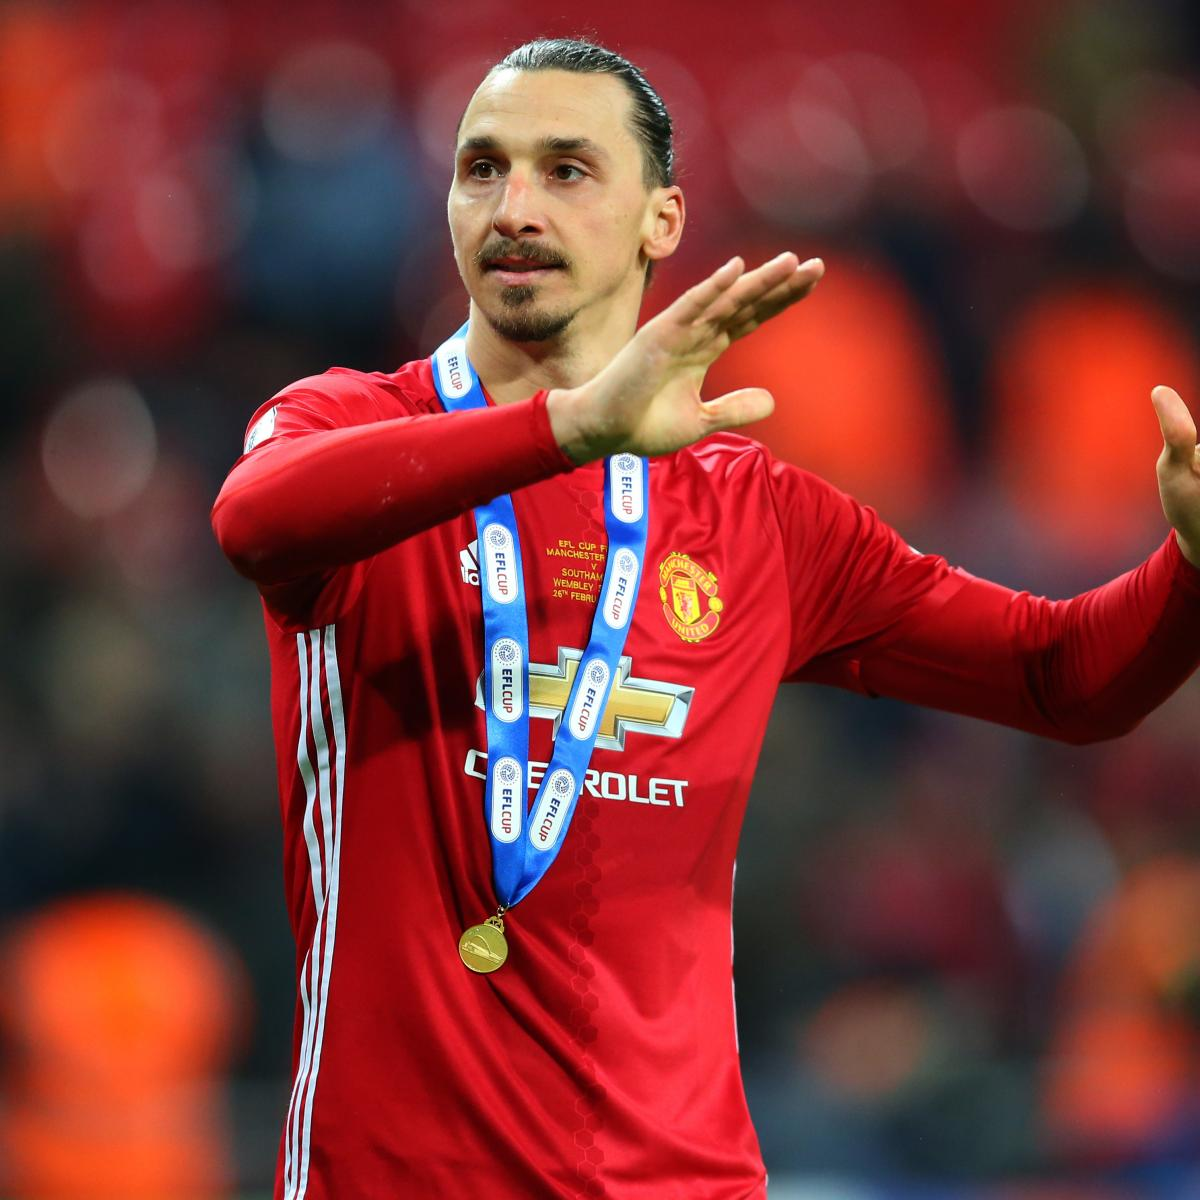 Manchester United Transfer News Latest Rumours On Lucas: Manchester United Transfer News: Latest Zlatan Ibrahimovic